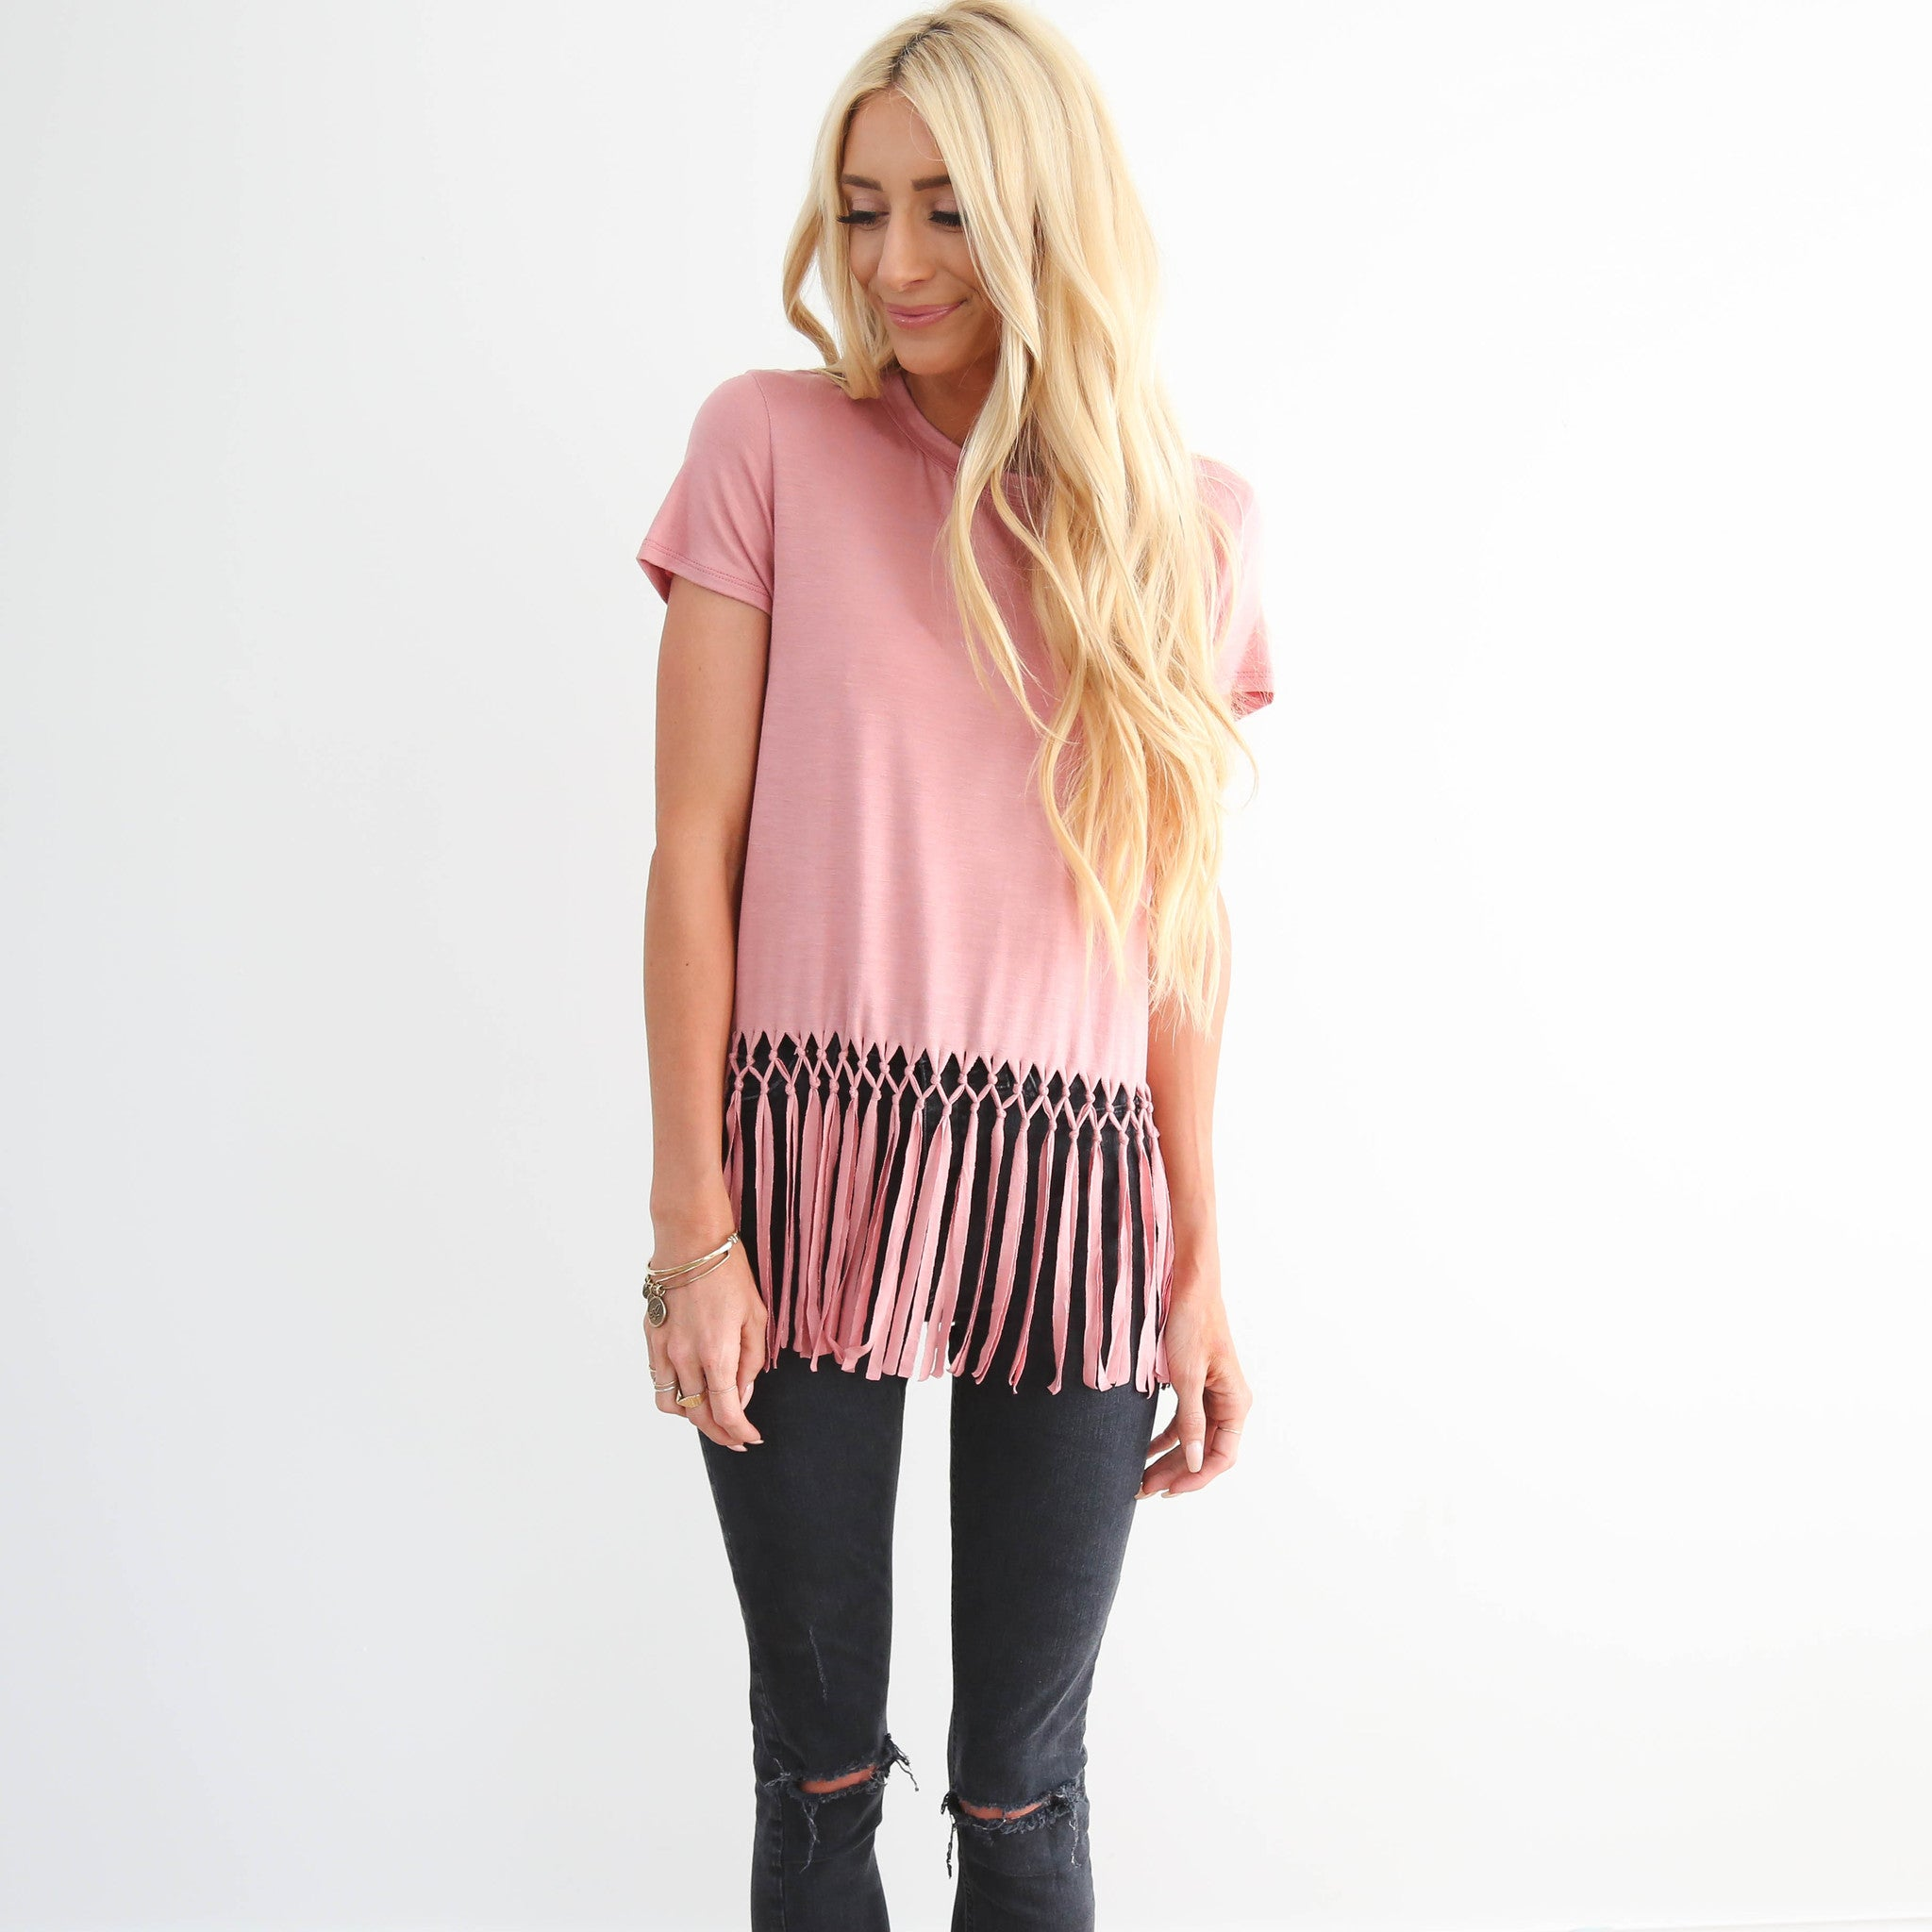 S & Co. Mauve Fringed Top